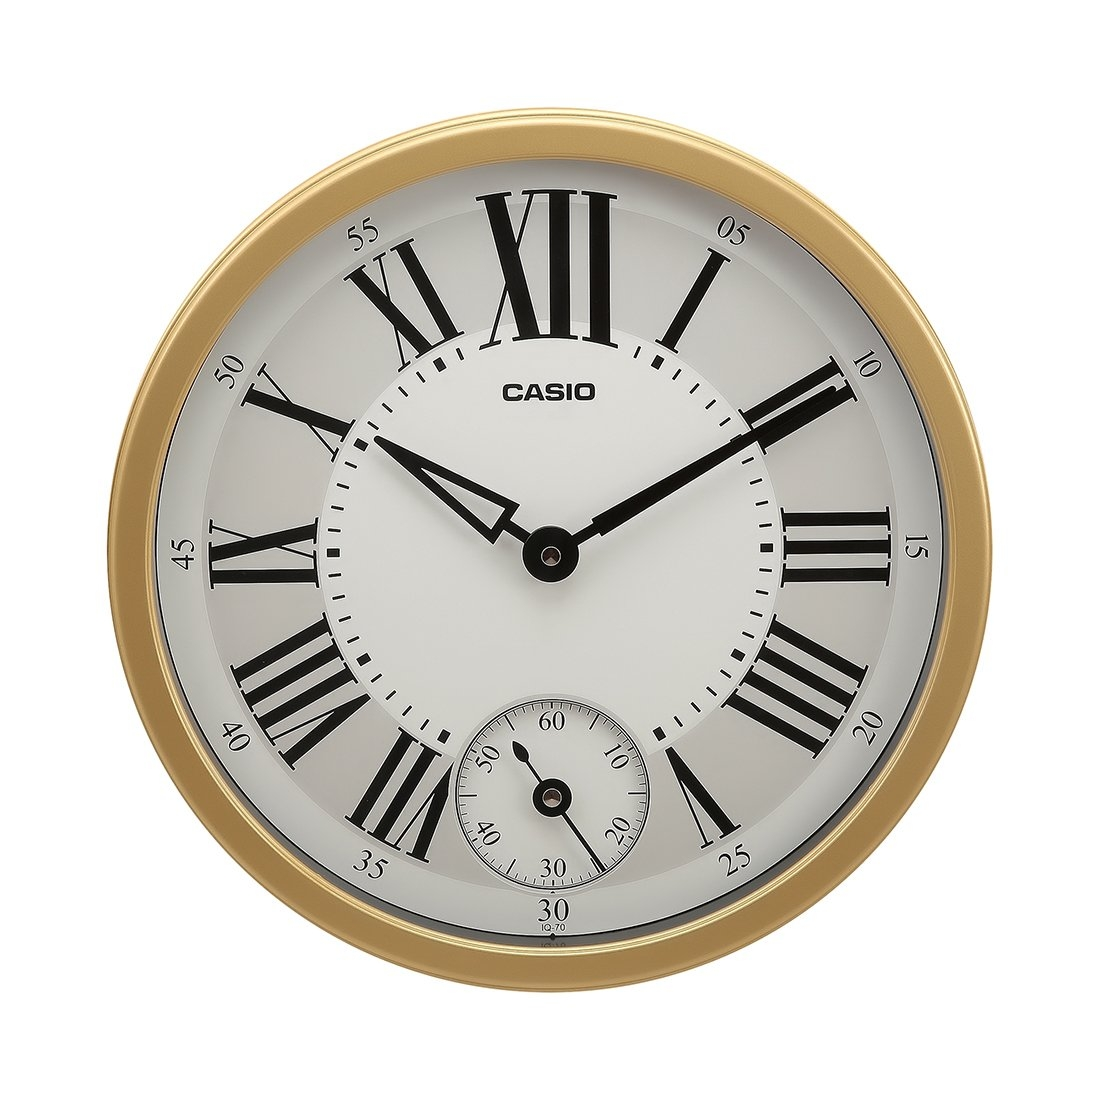 CASIO WALL CLOCK 35 x 35